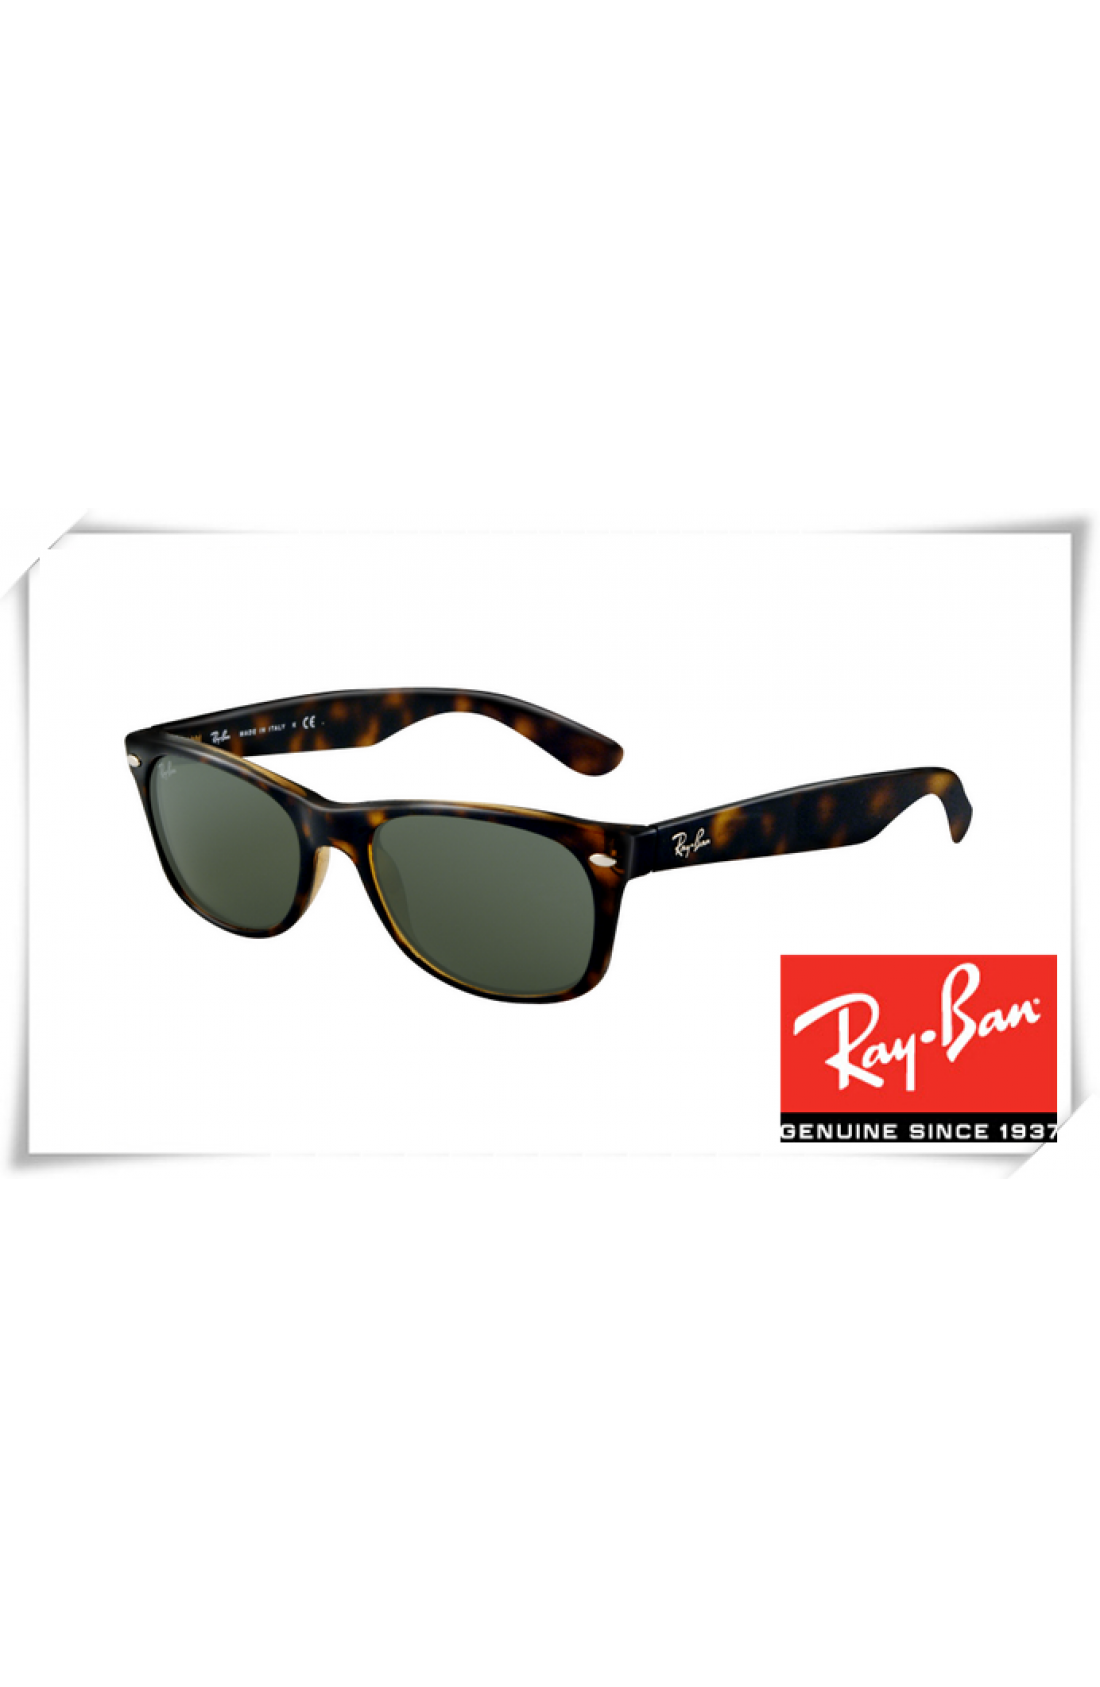 c39e364e571c2 Cheap Fake Ray Ban RB 2132 New Wayfarer Sunglasses Tortoise ...